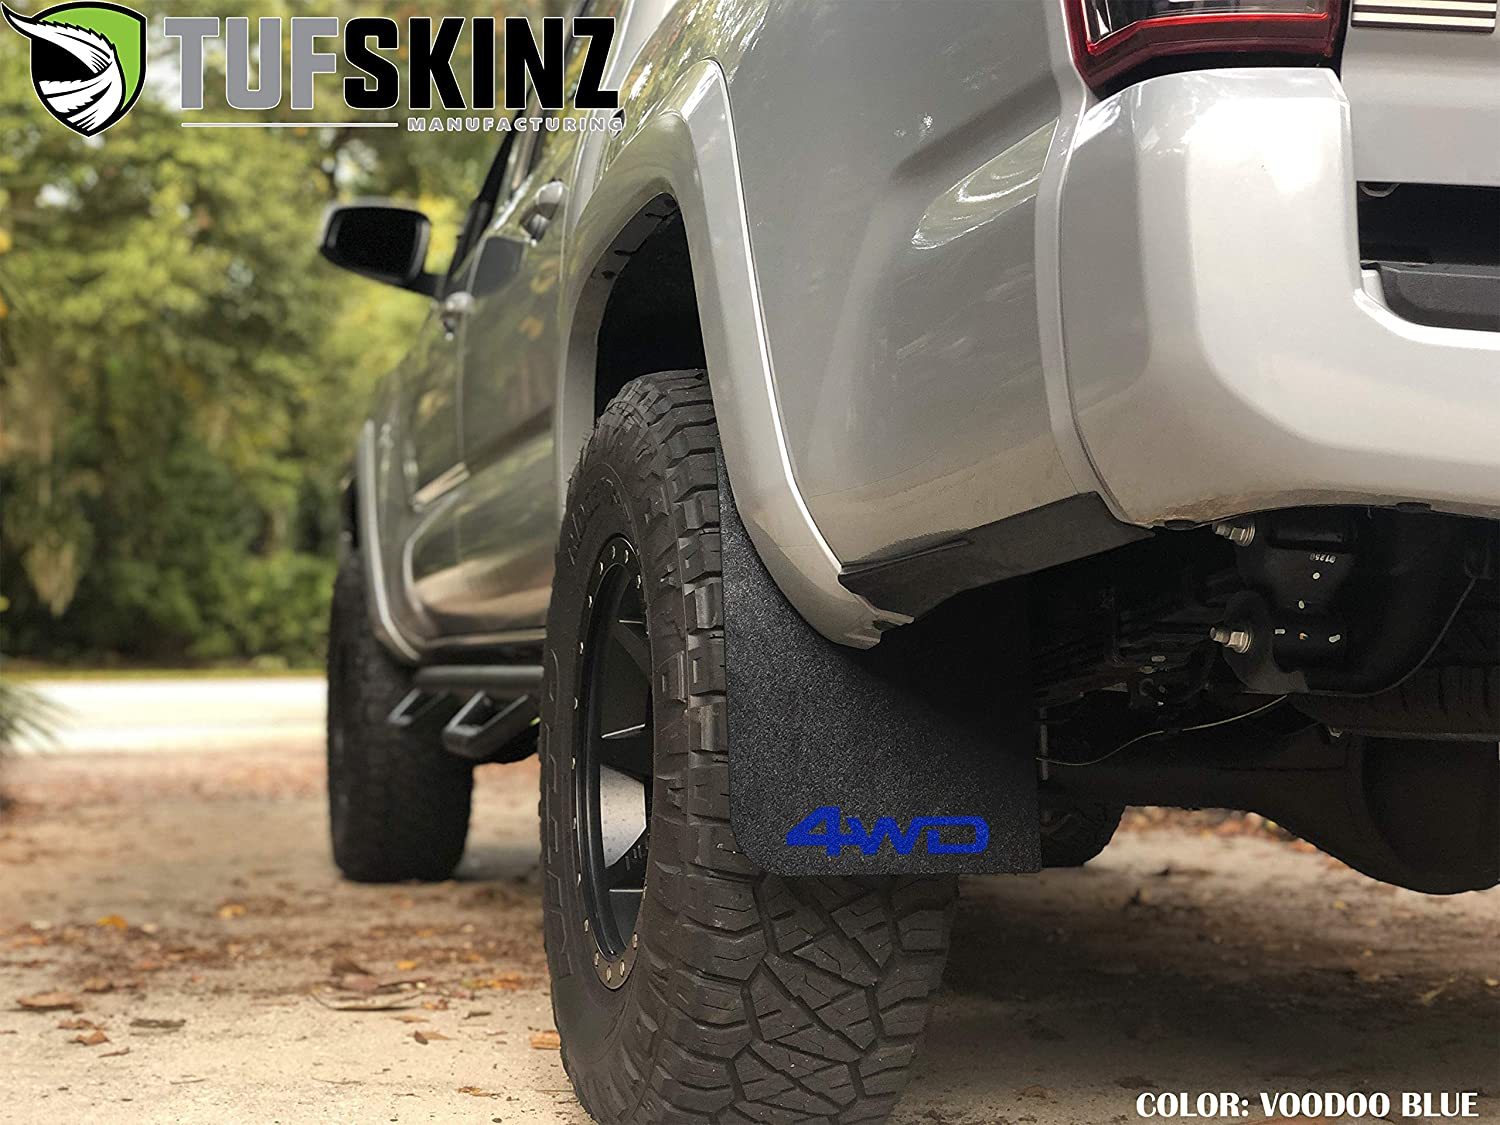 TufSkinz Mud Flaps Fits 2016-up Toyota Tacoma -2 Piece Kit /… Front Mud Flaps, White